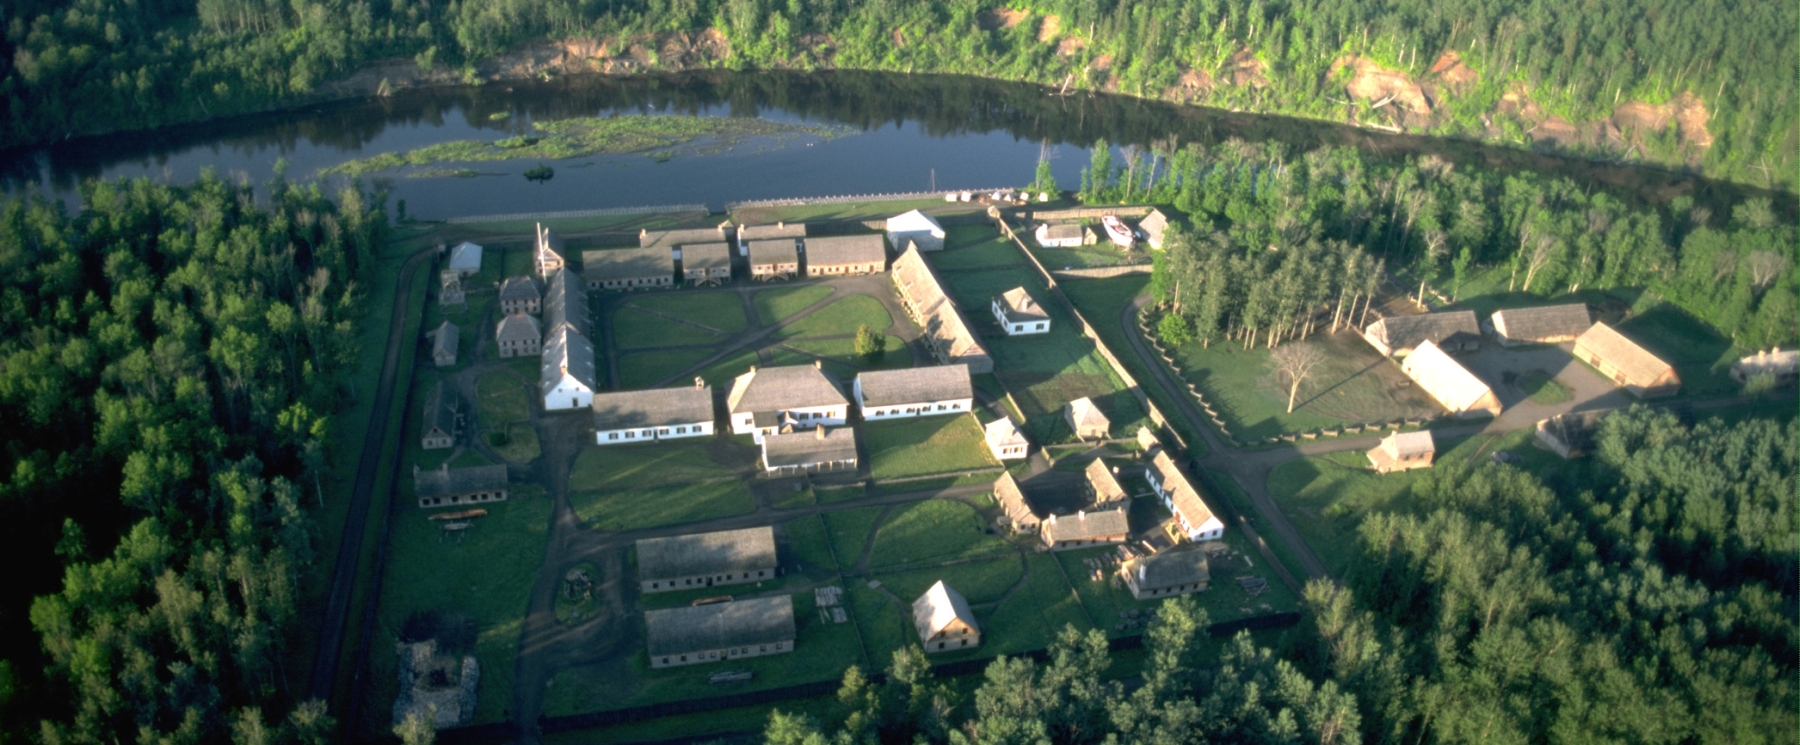 aerial viiew of Fort William Historical Park